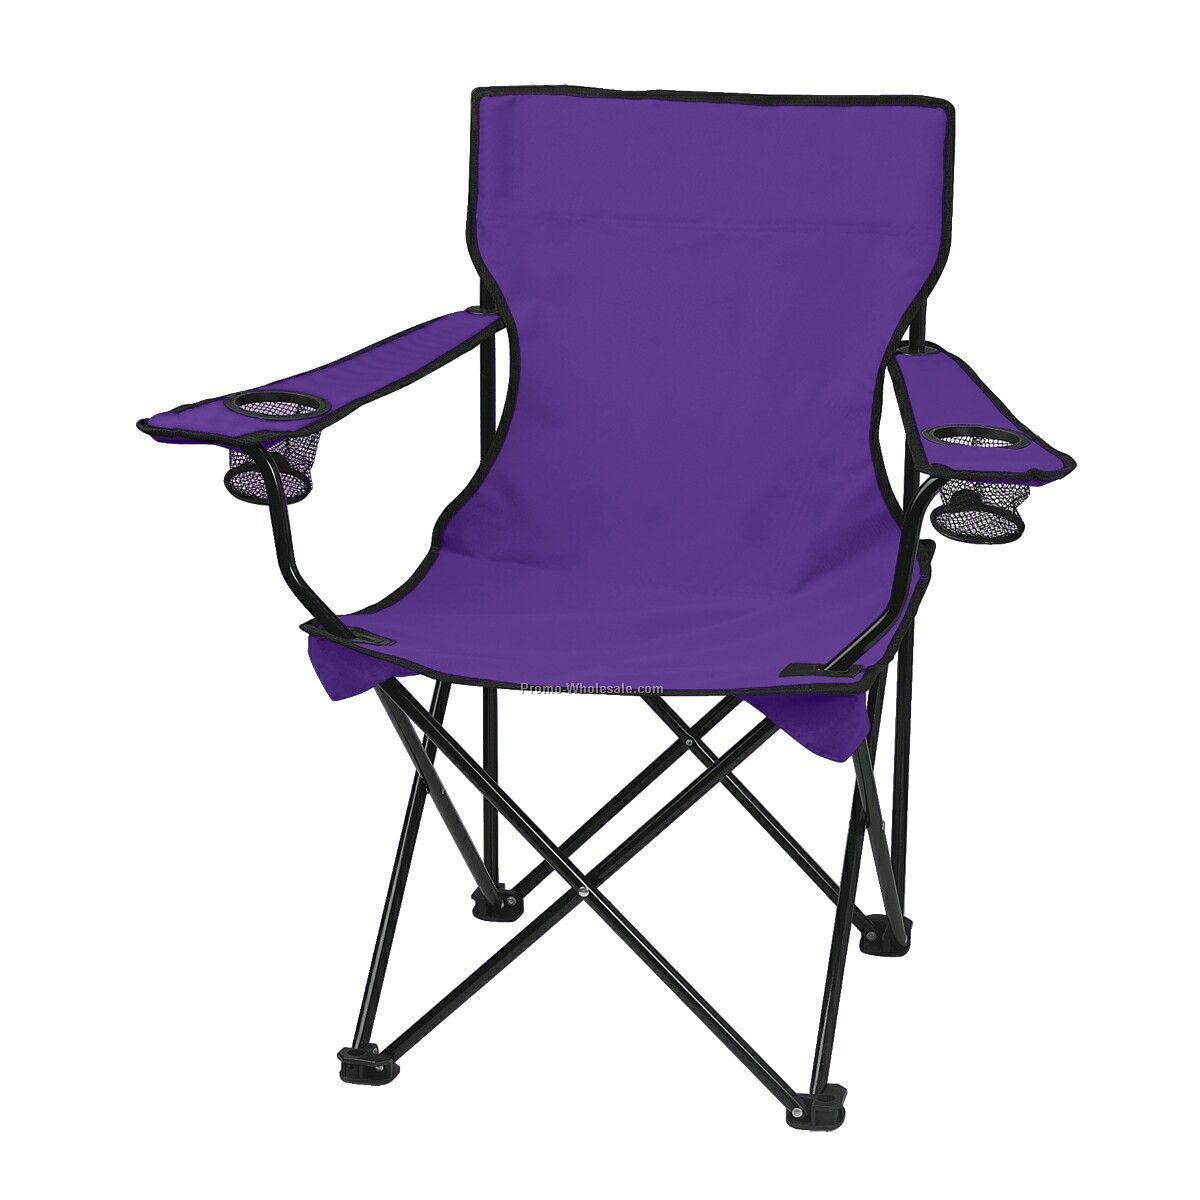 Folding Chair With Carrying Bag Solid Color Blank Wholesale china